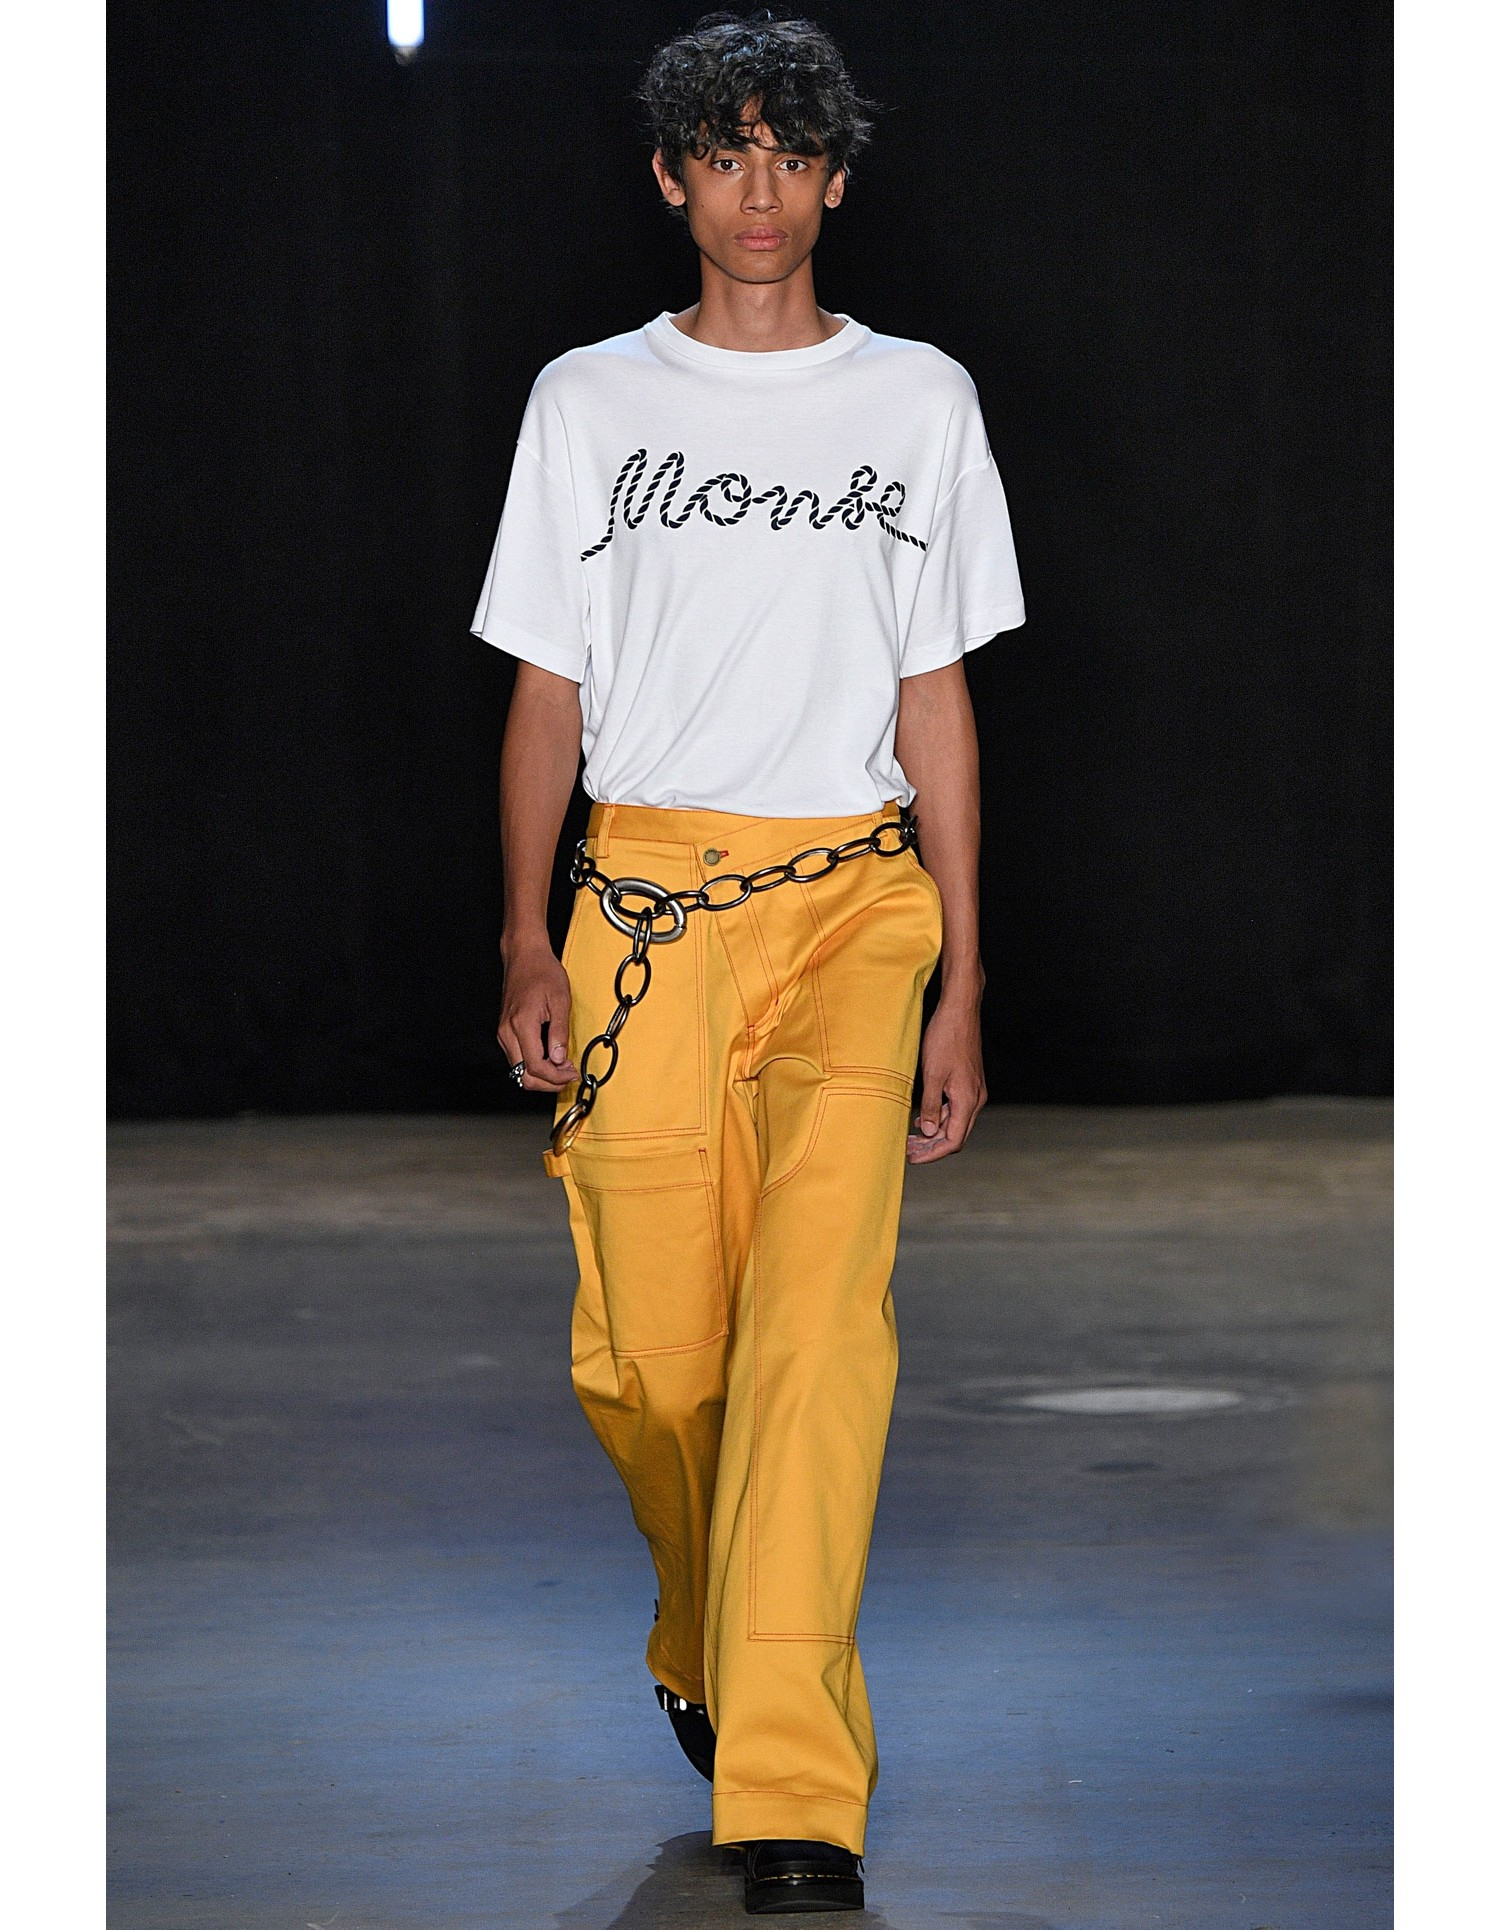 Monse Rope Print Tee in White on Runway Model